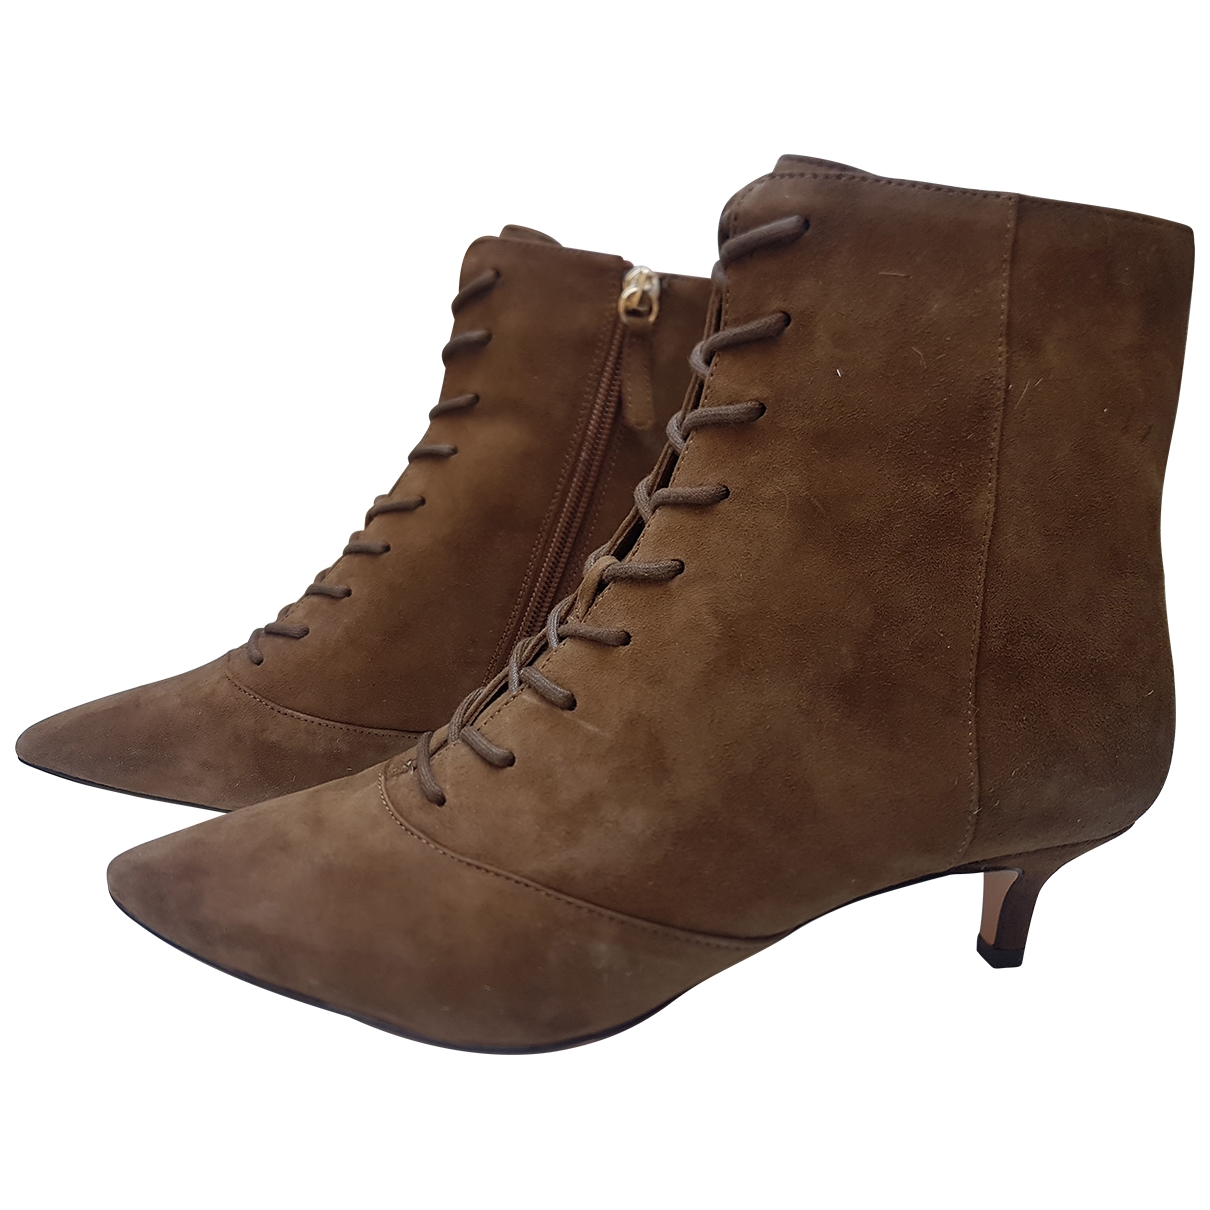 J.crew \N Brown Suede Ankle boots for Women 36.5 EU